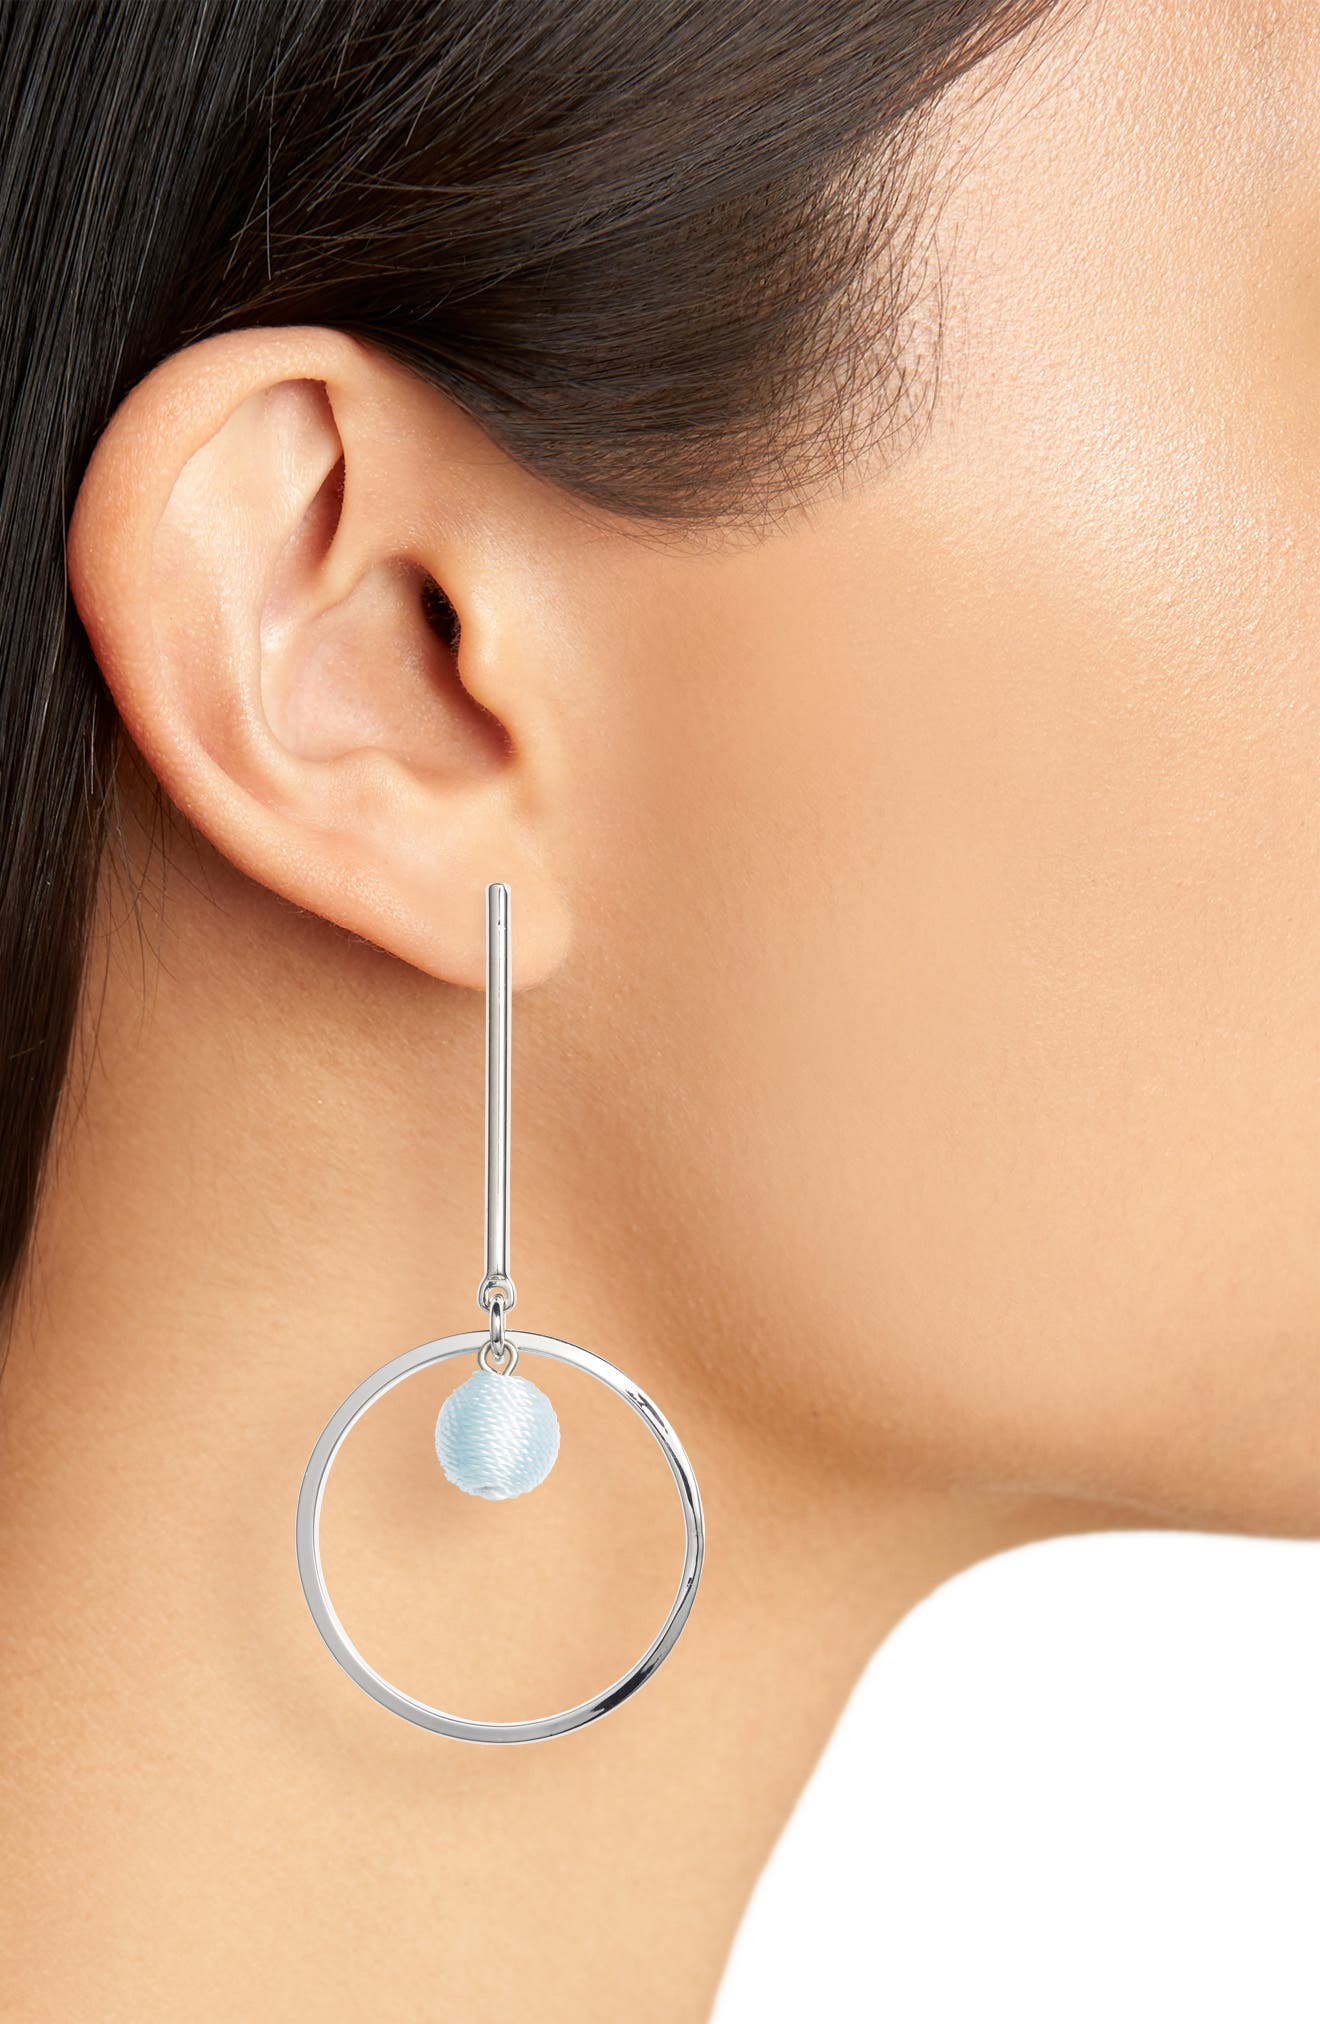 Bar & Hoop Earrings,                             Alternate thumbnail 2, color,                             040